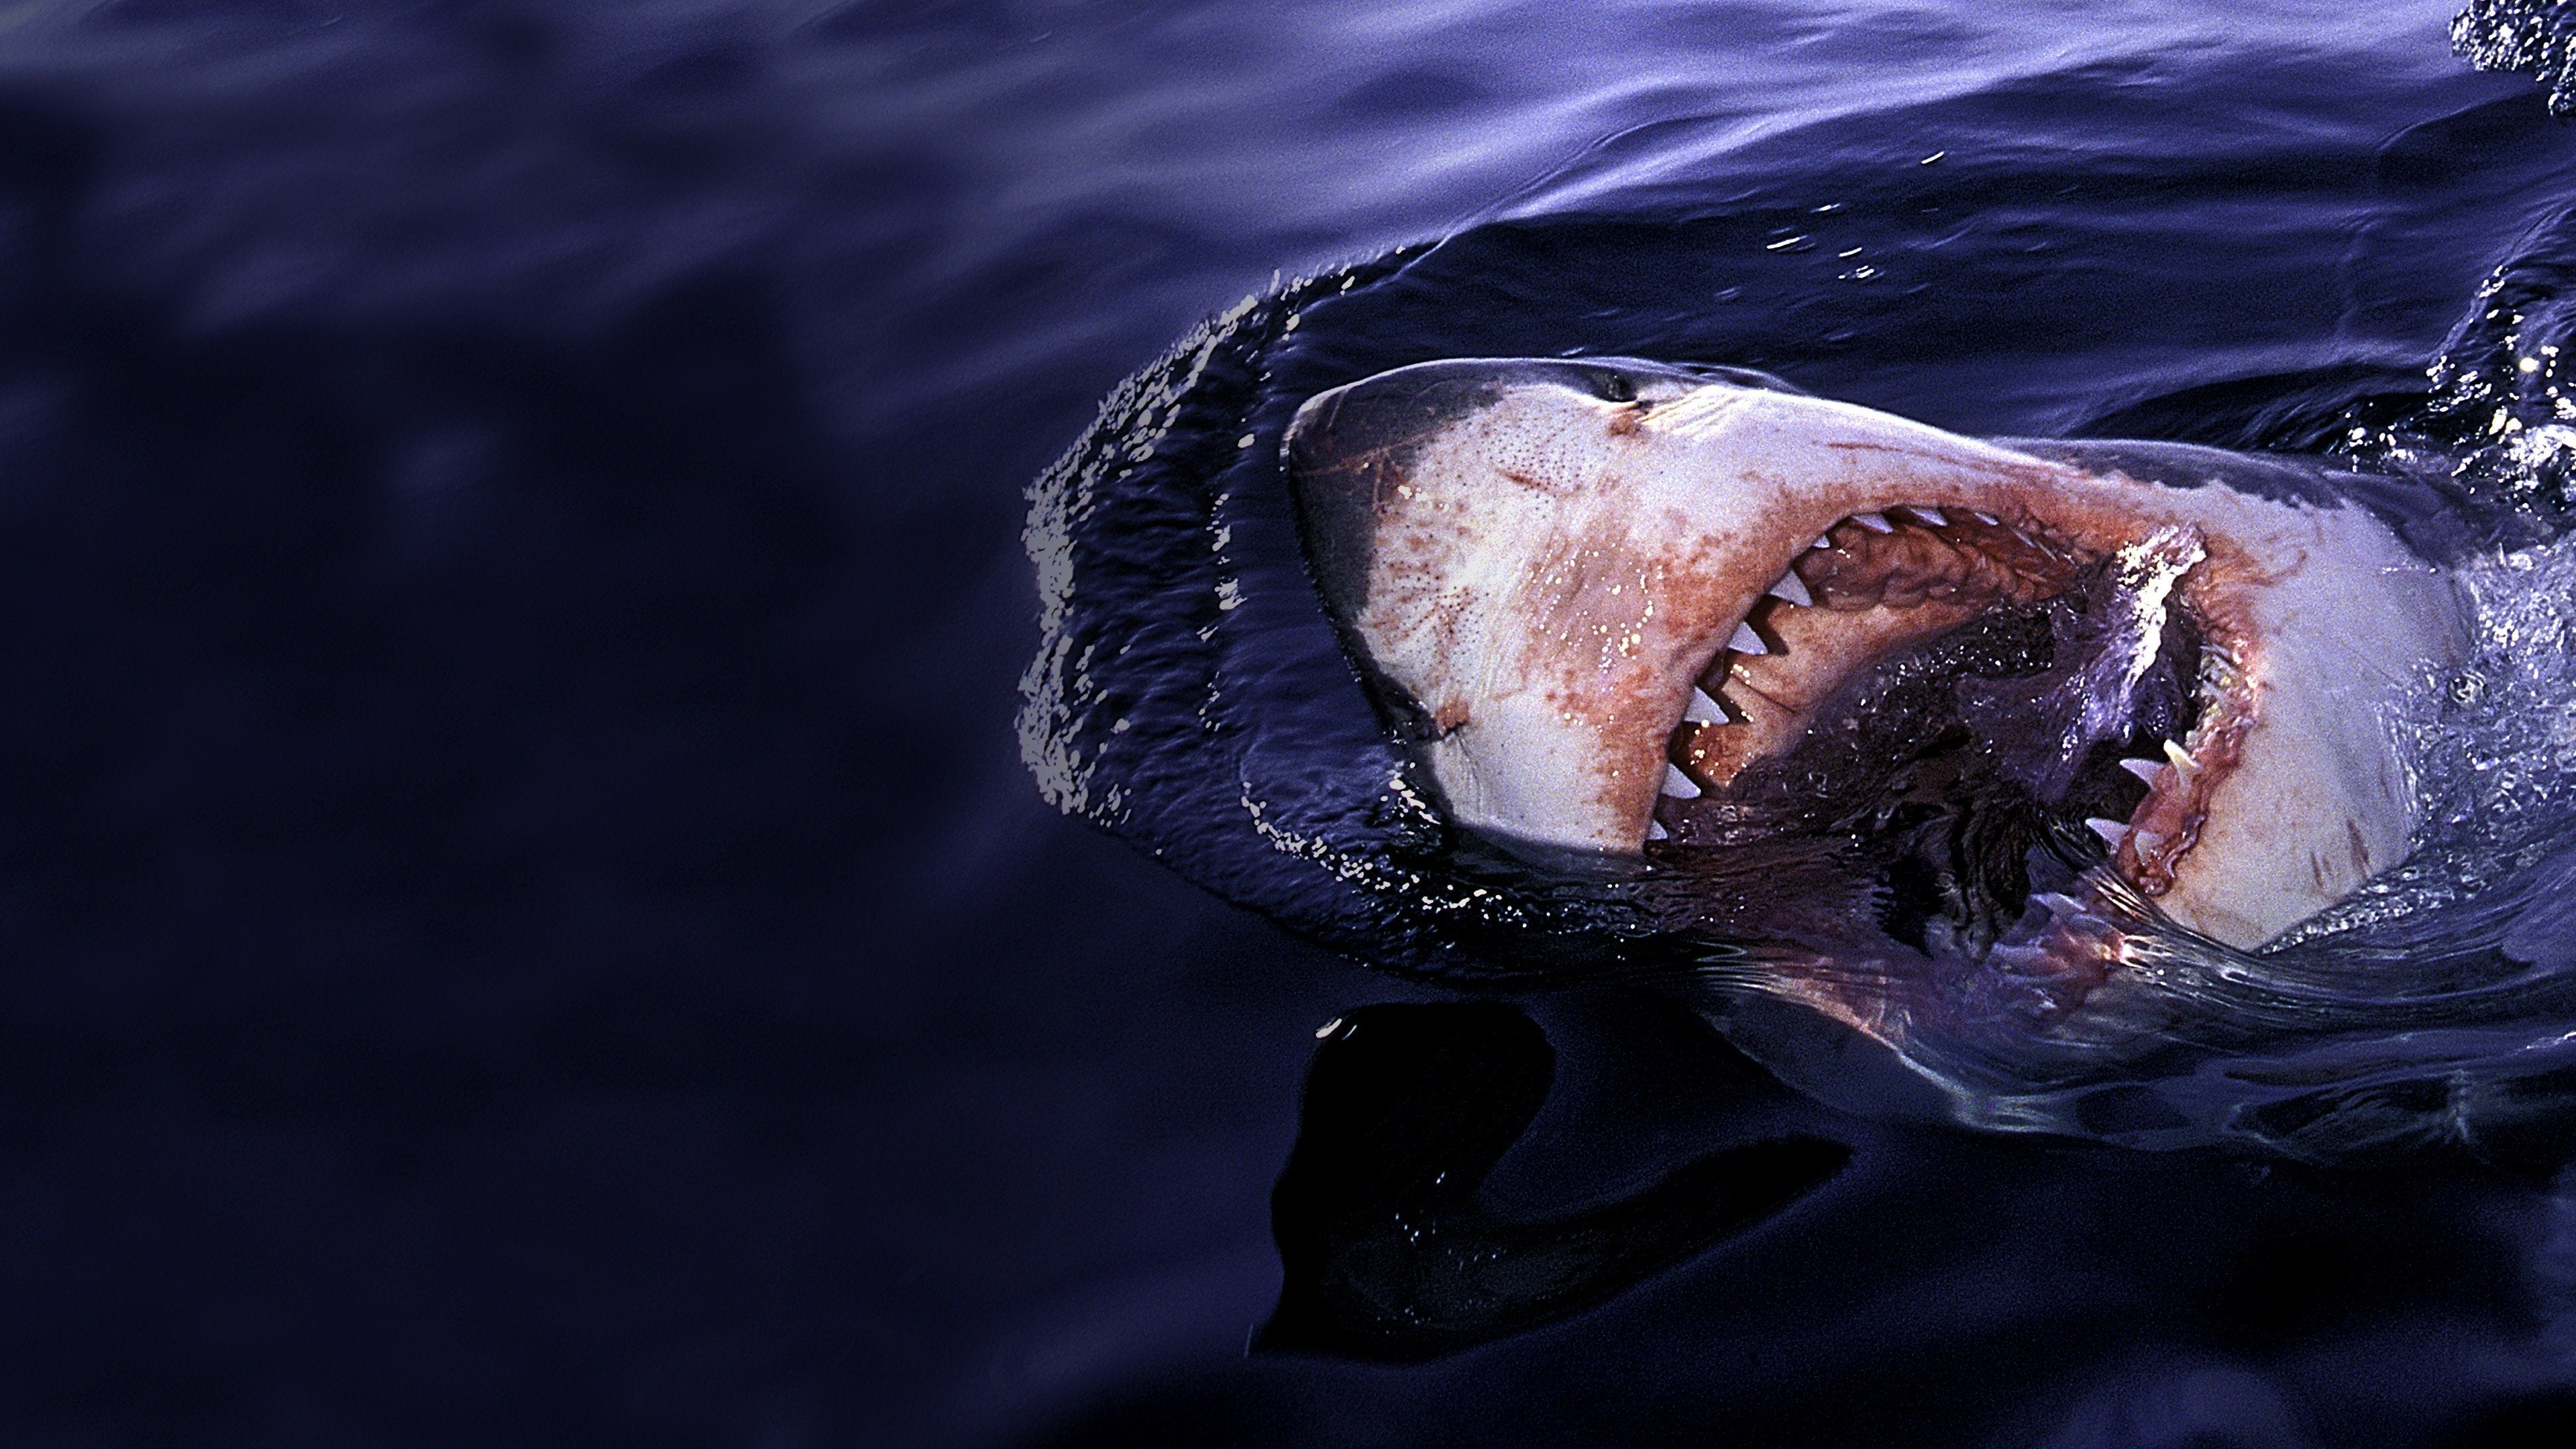 Laws of Jaws: Dangerous Waters: Sharkmania